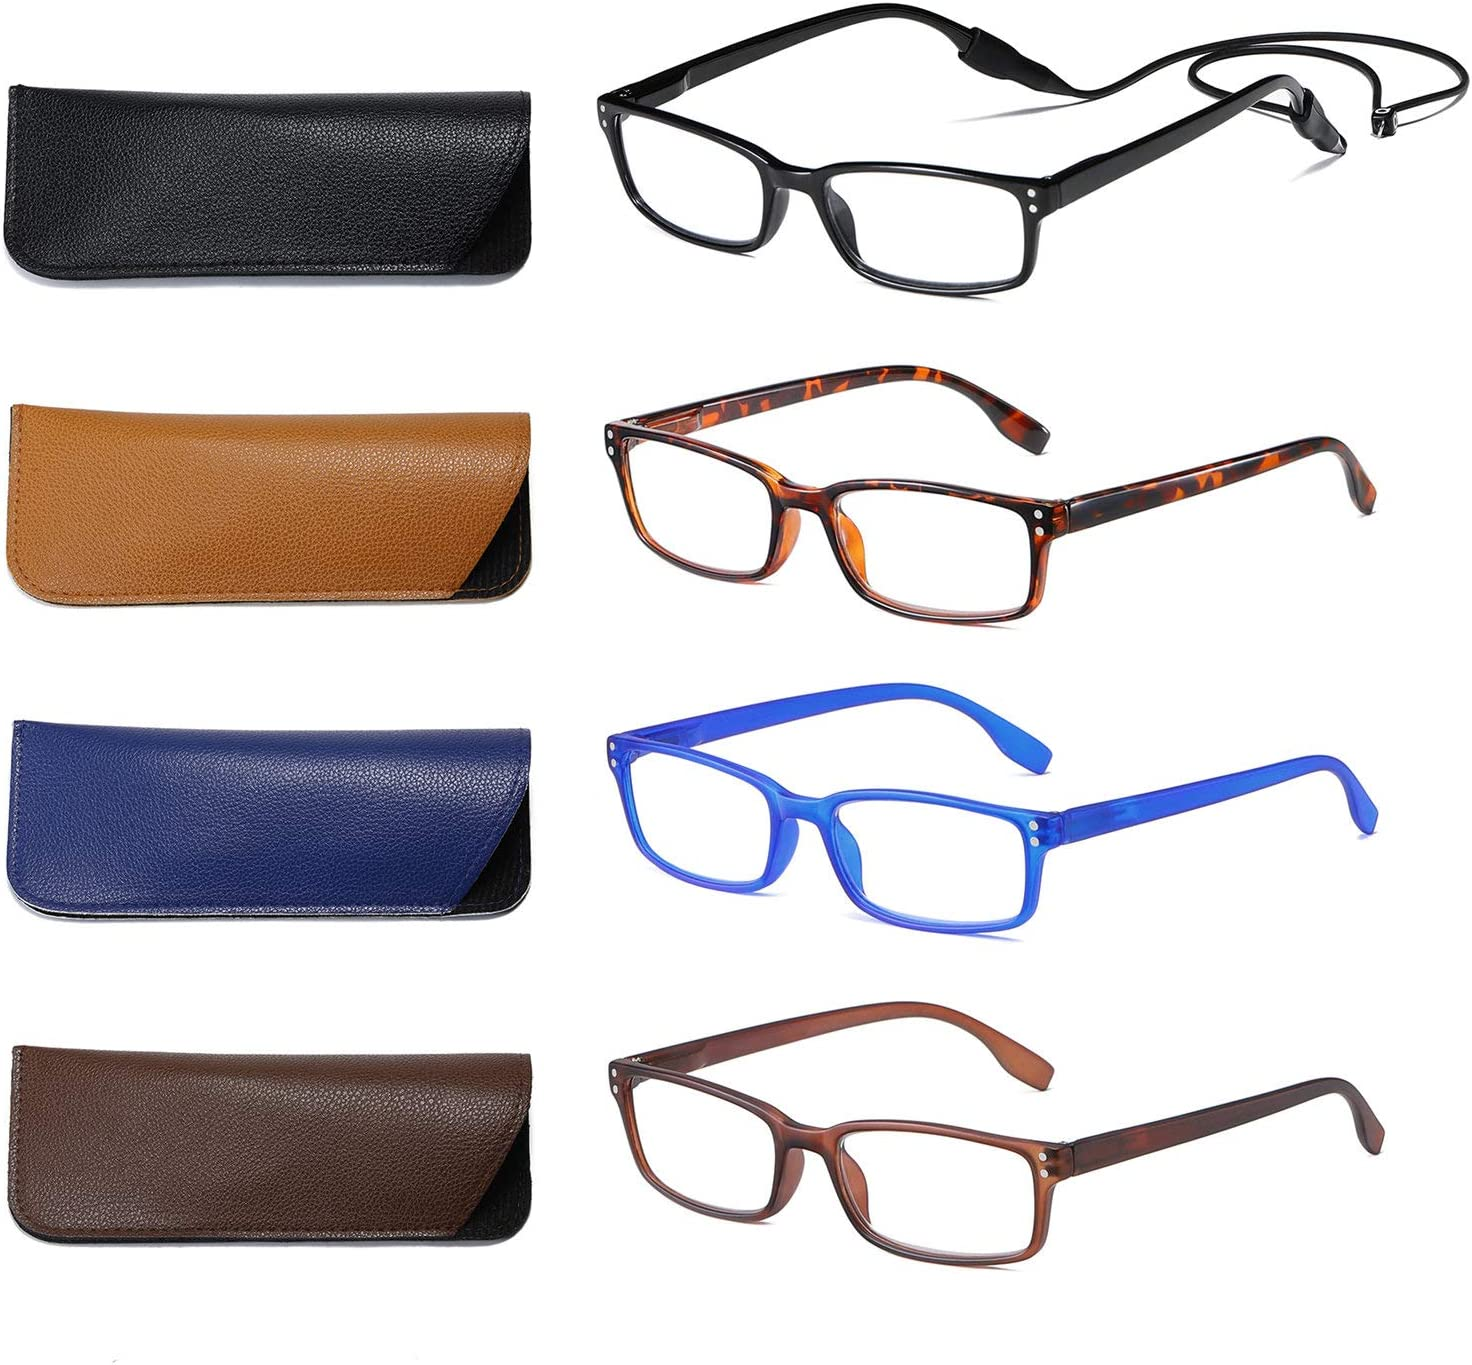 SOCTICK Reading Glasses 4-Pack Lightweight Spring Hinge Onepower Readers for Men and Women,+2.50: Health & Personal Care